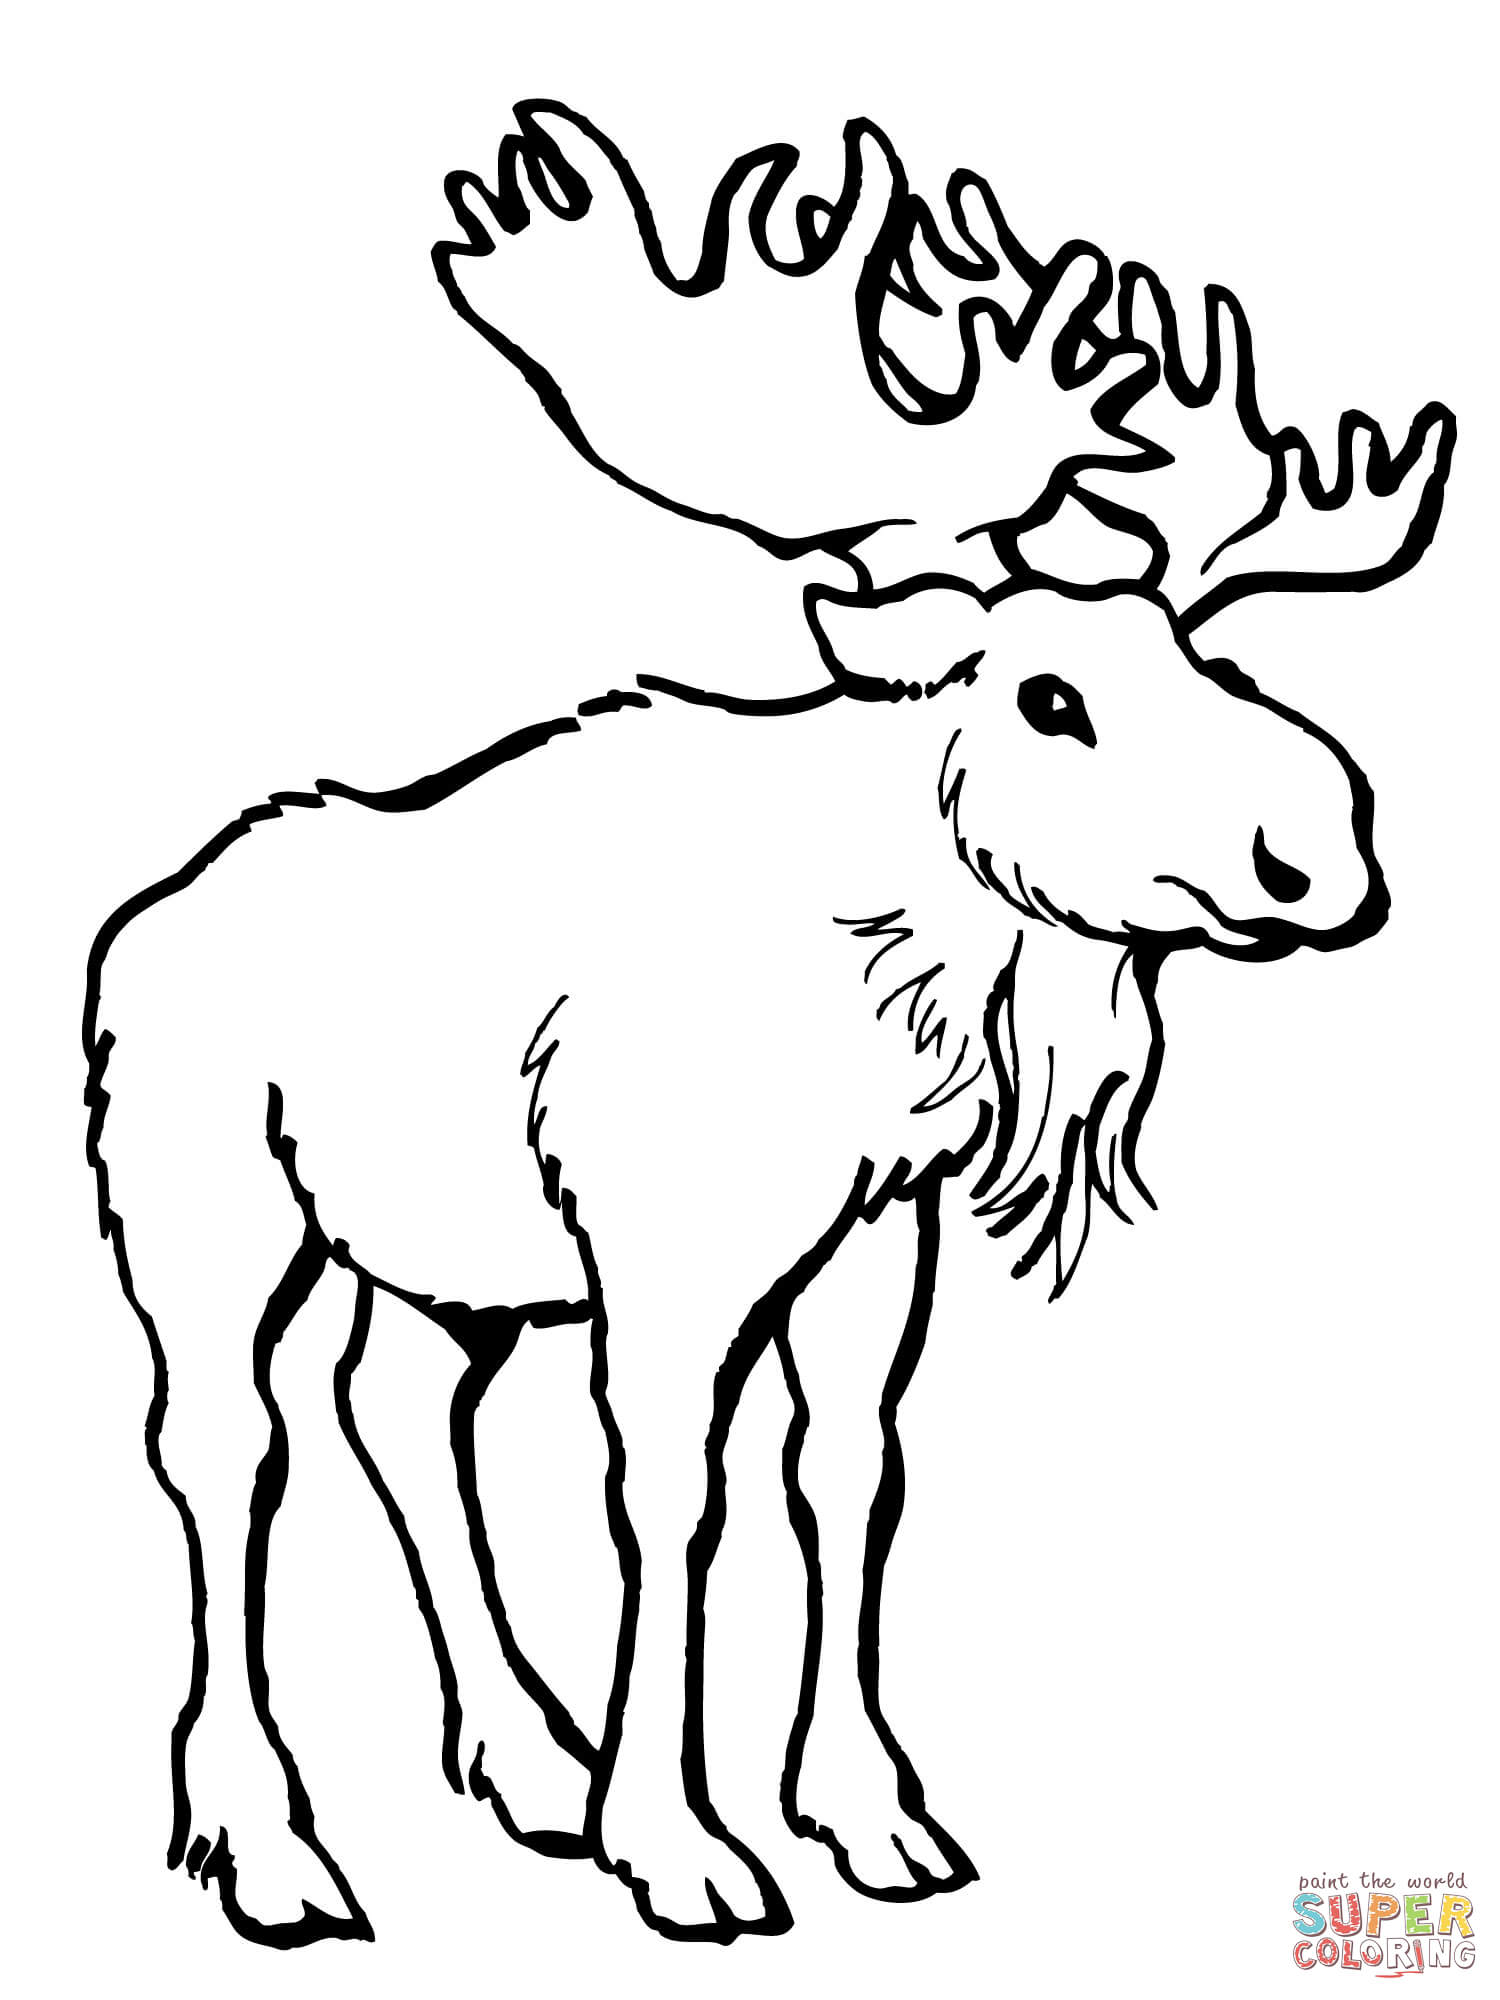 moose-coloring-page-0007-q1